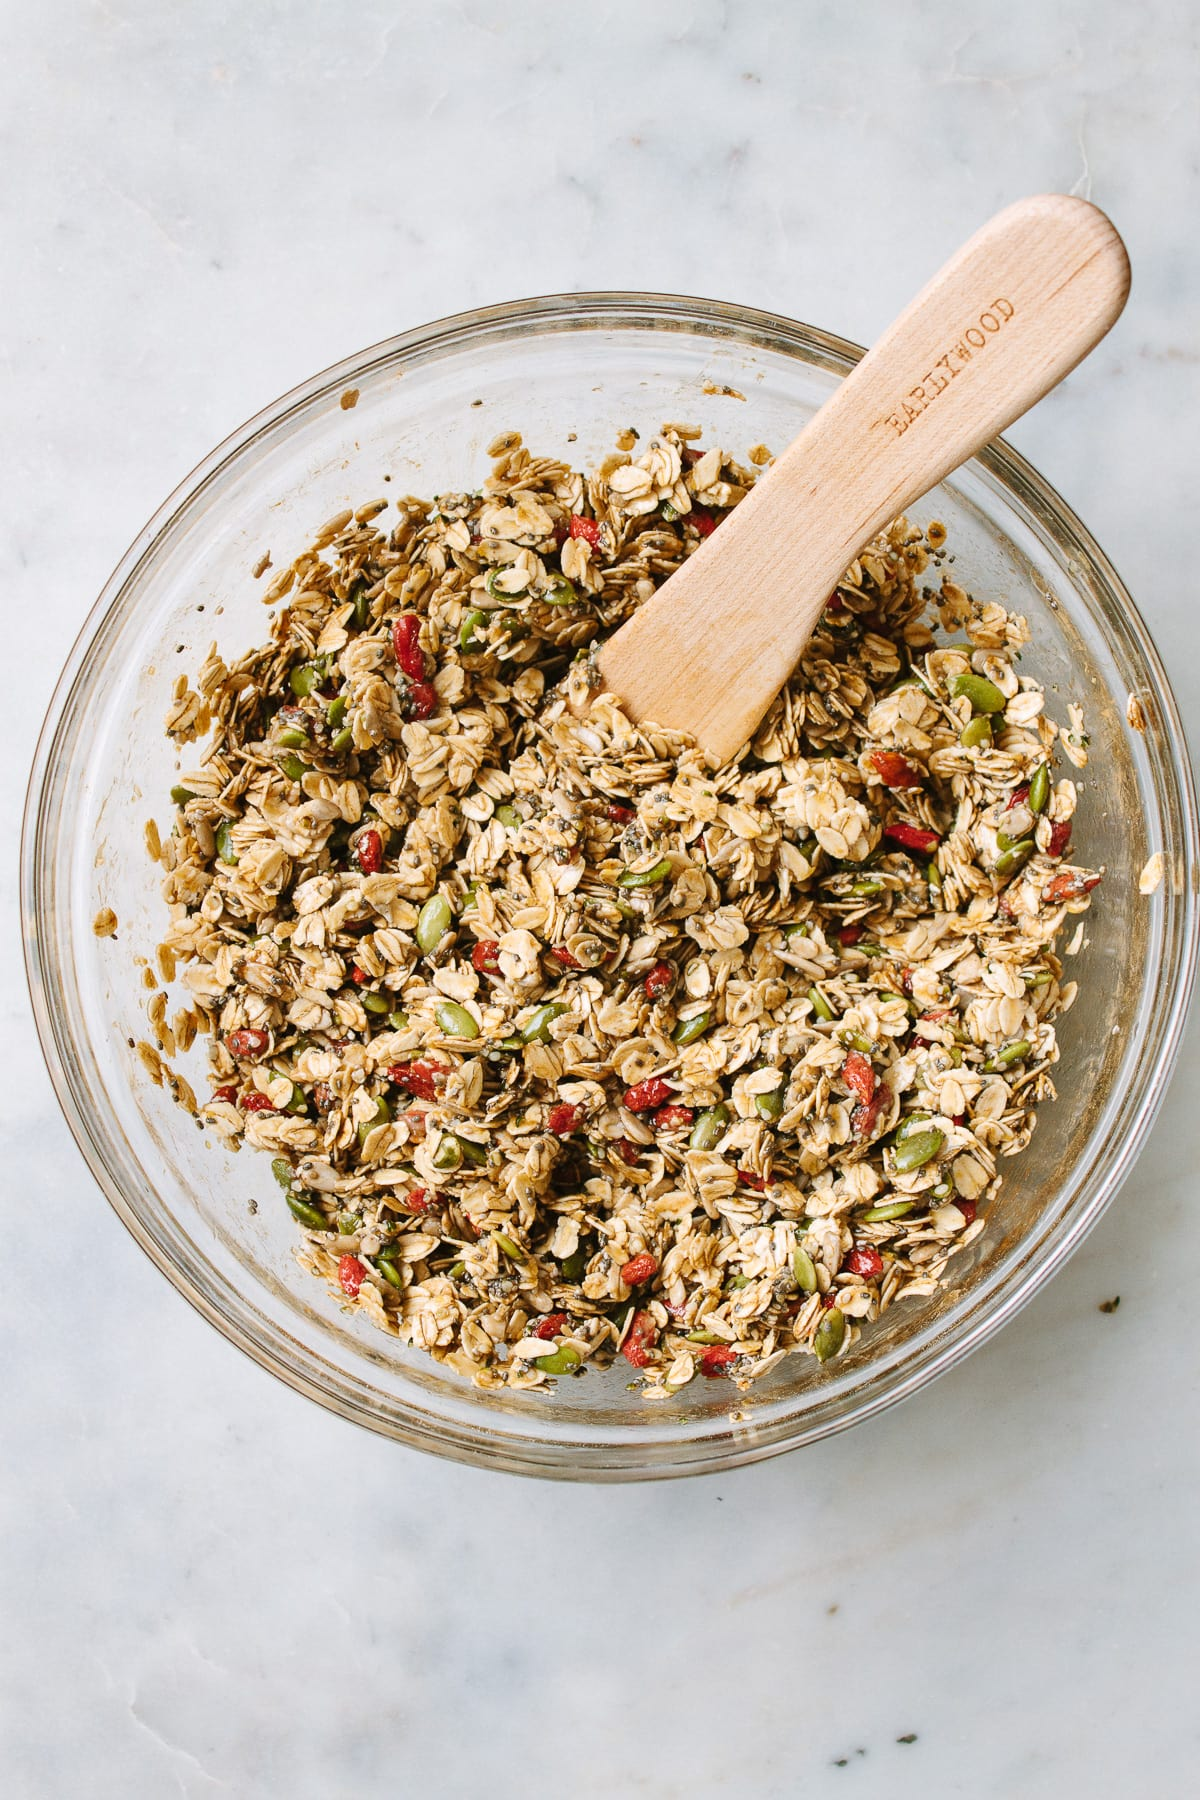 top down view of a glass mixing bowl with freshly mixed batch of seeds and goji berry granola.